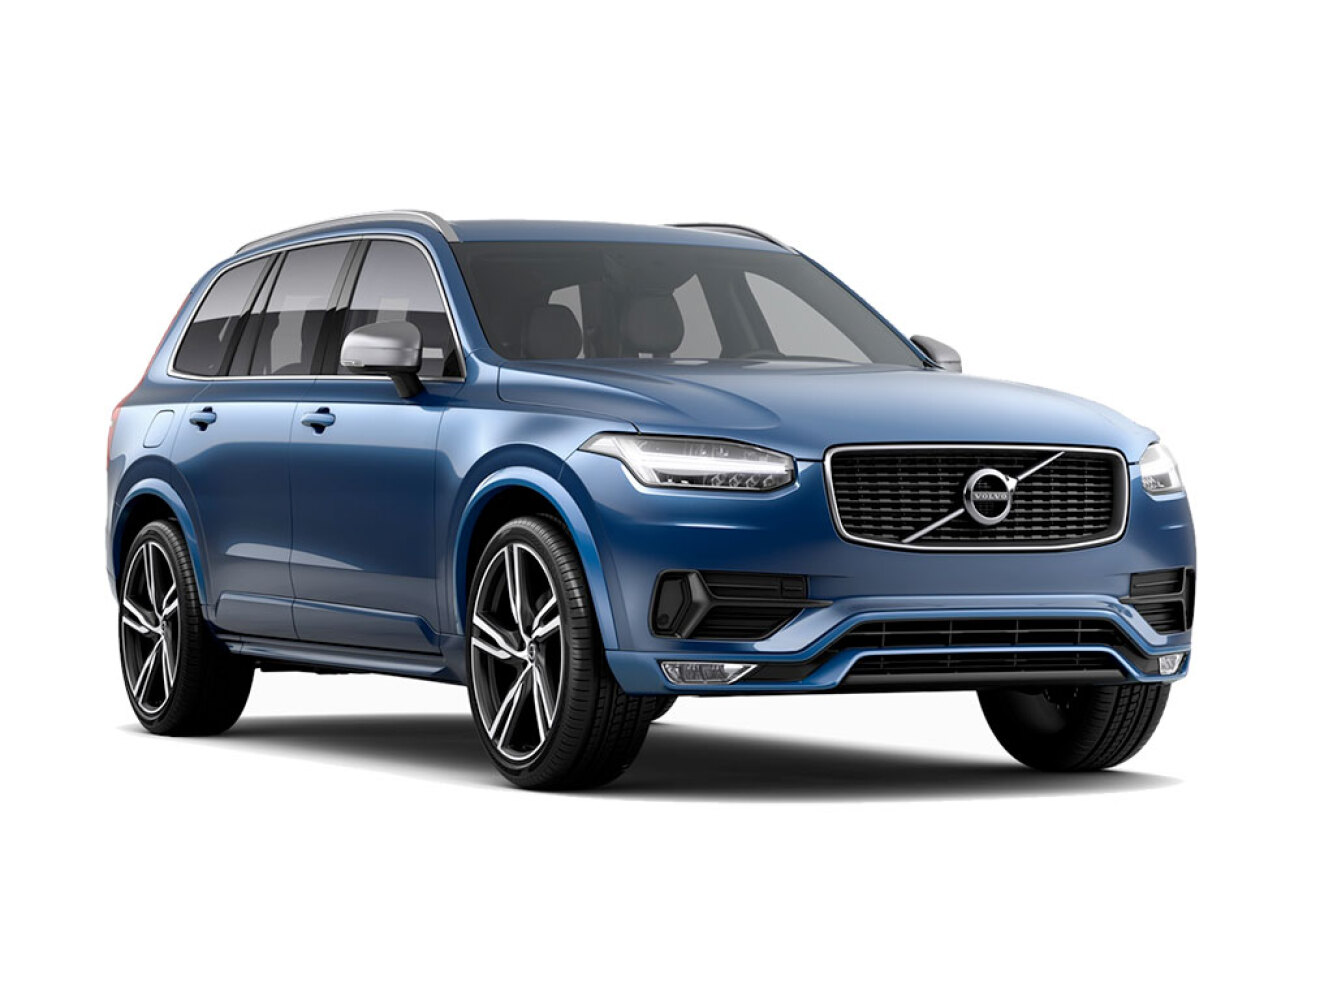 new volvo xc90 2 0 d5 powerpulse r design pro 5dr awd. Black Bedroom Furniture Sets. Home Design Ideas